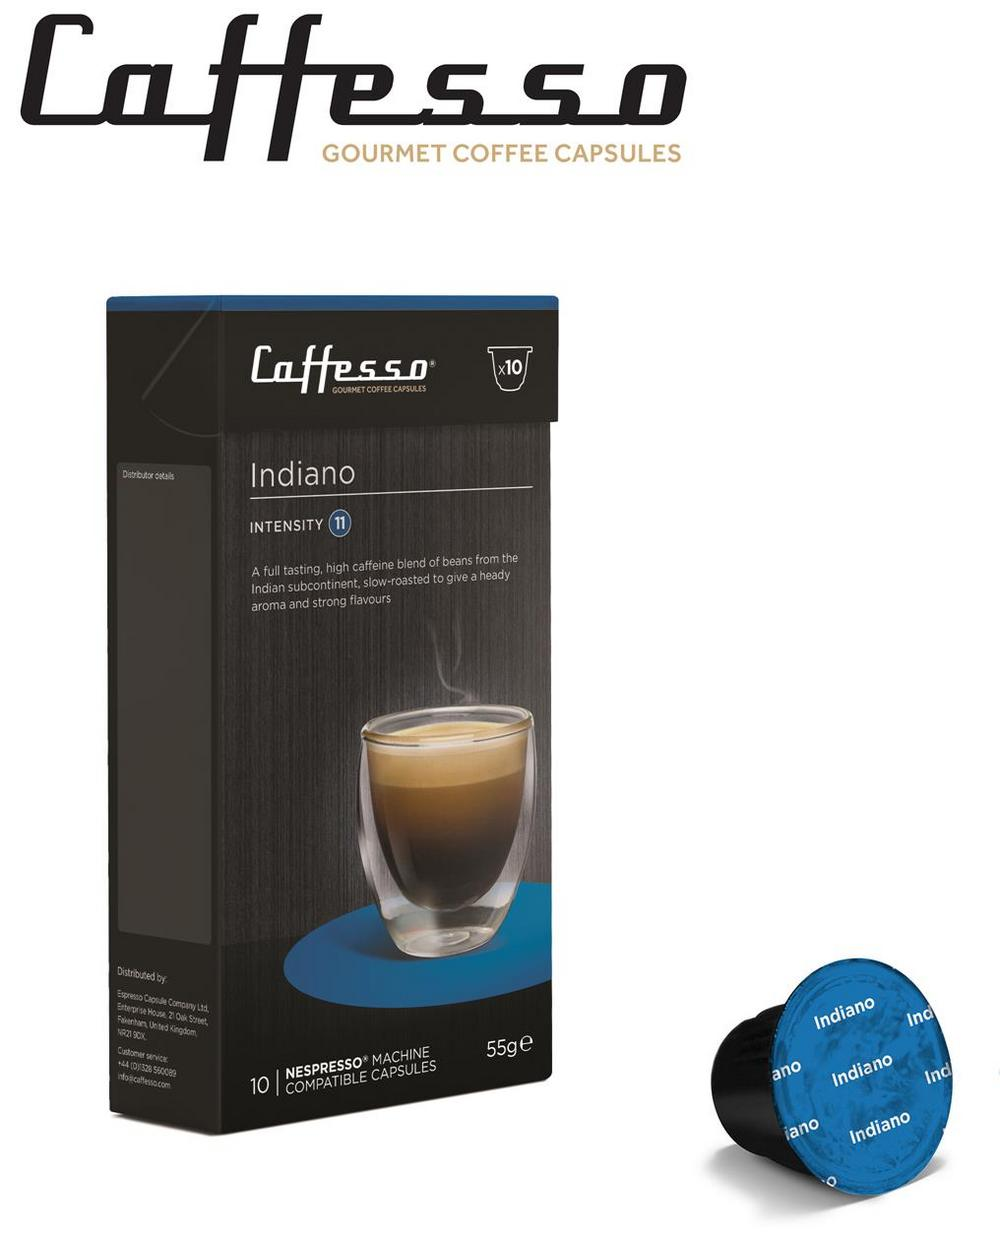 10 x Caffesso Nespresso Compatible Coffee Capsules / Pods - Indiano Blend